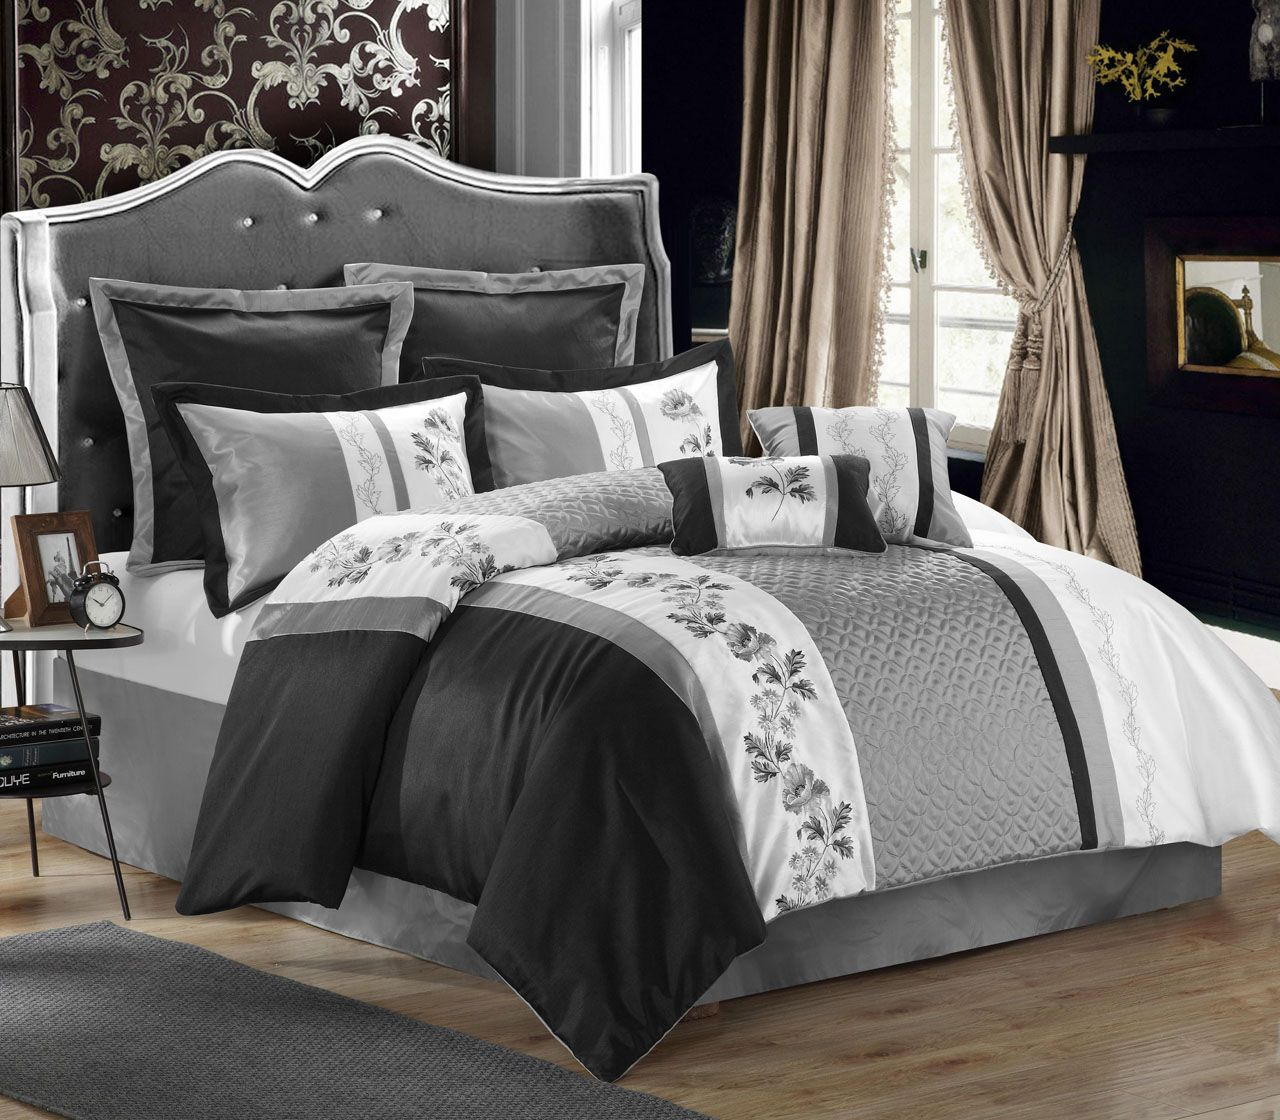 8 Piece Serbia Black Gray White Comforter Set White And Gold Bedding Black Comforter White Bedroom Set